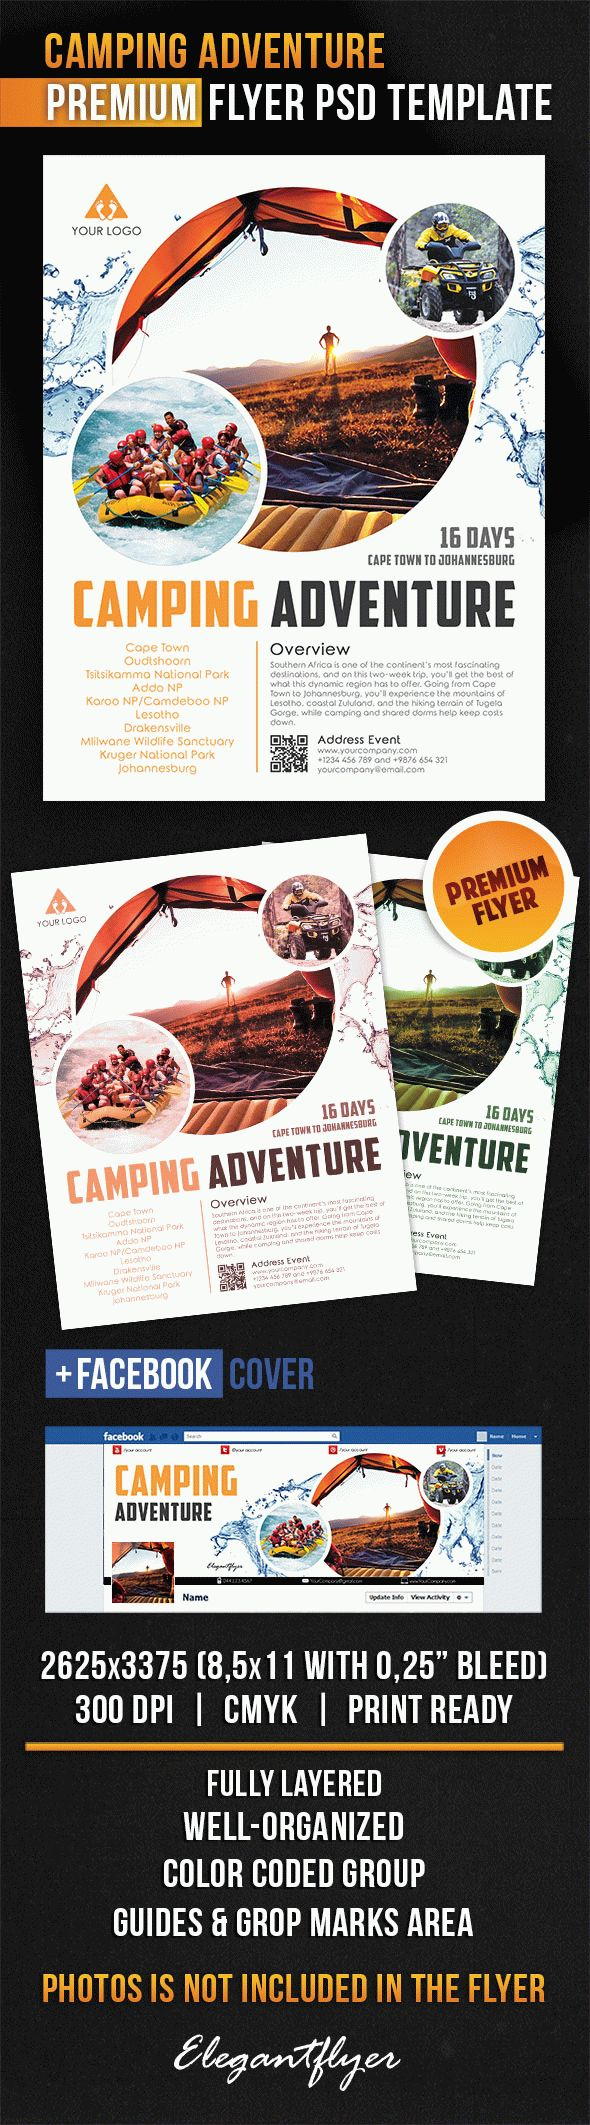 Camping Adventure – Flyer PSD Template + Facebook Cover